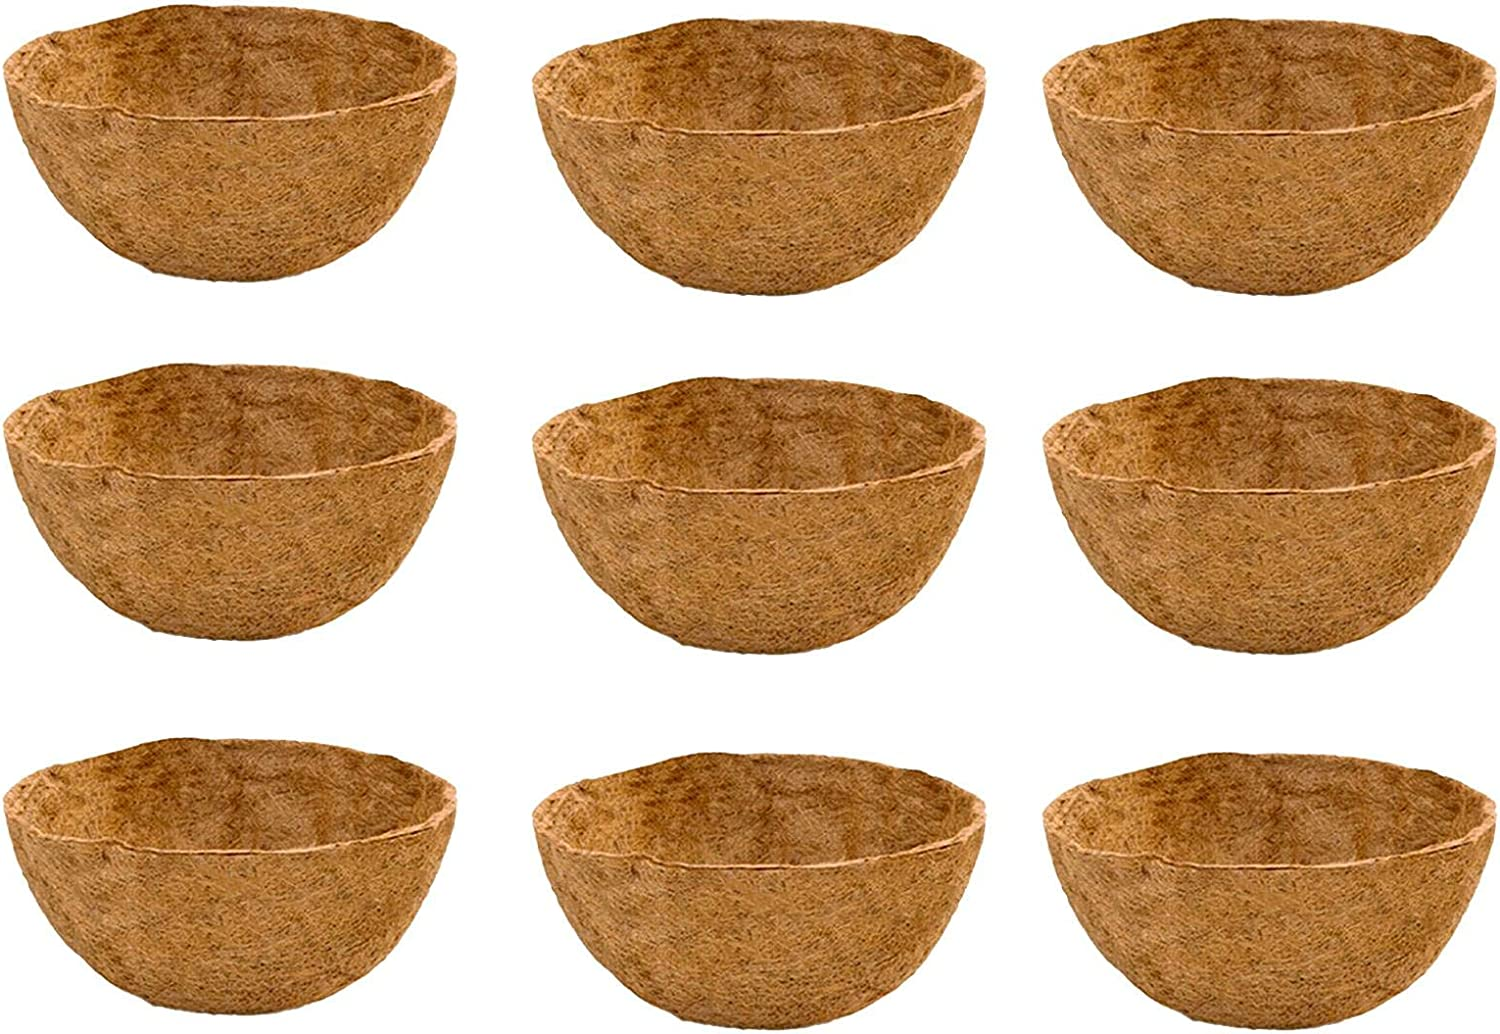 2021 new Challenge the lowest price of Japan Coconut Fiber Liner Circle Hanging Coco Replacemen Basket Liners